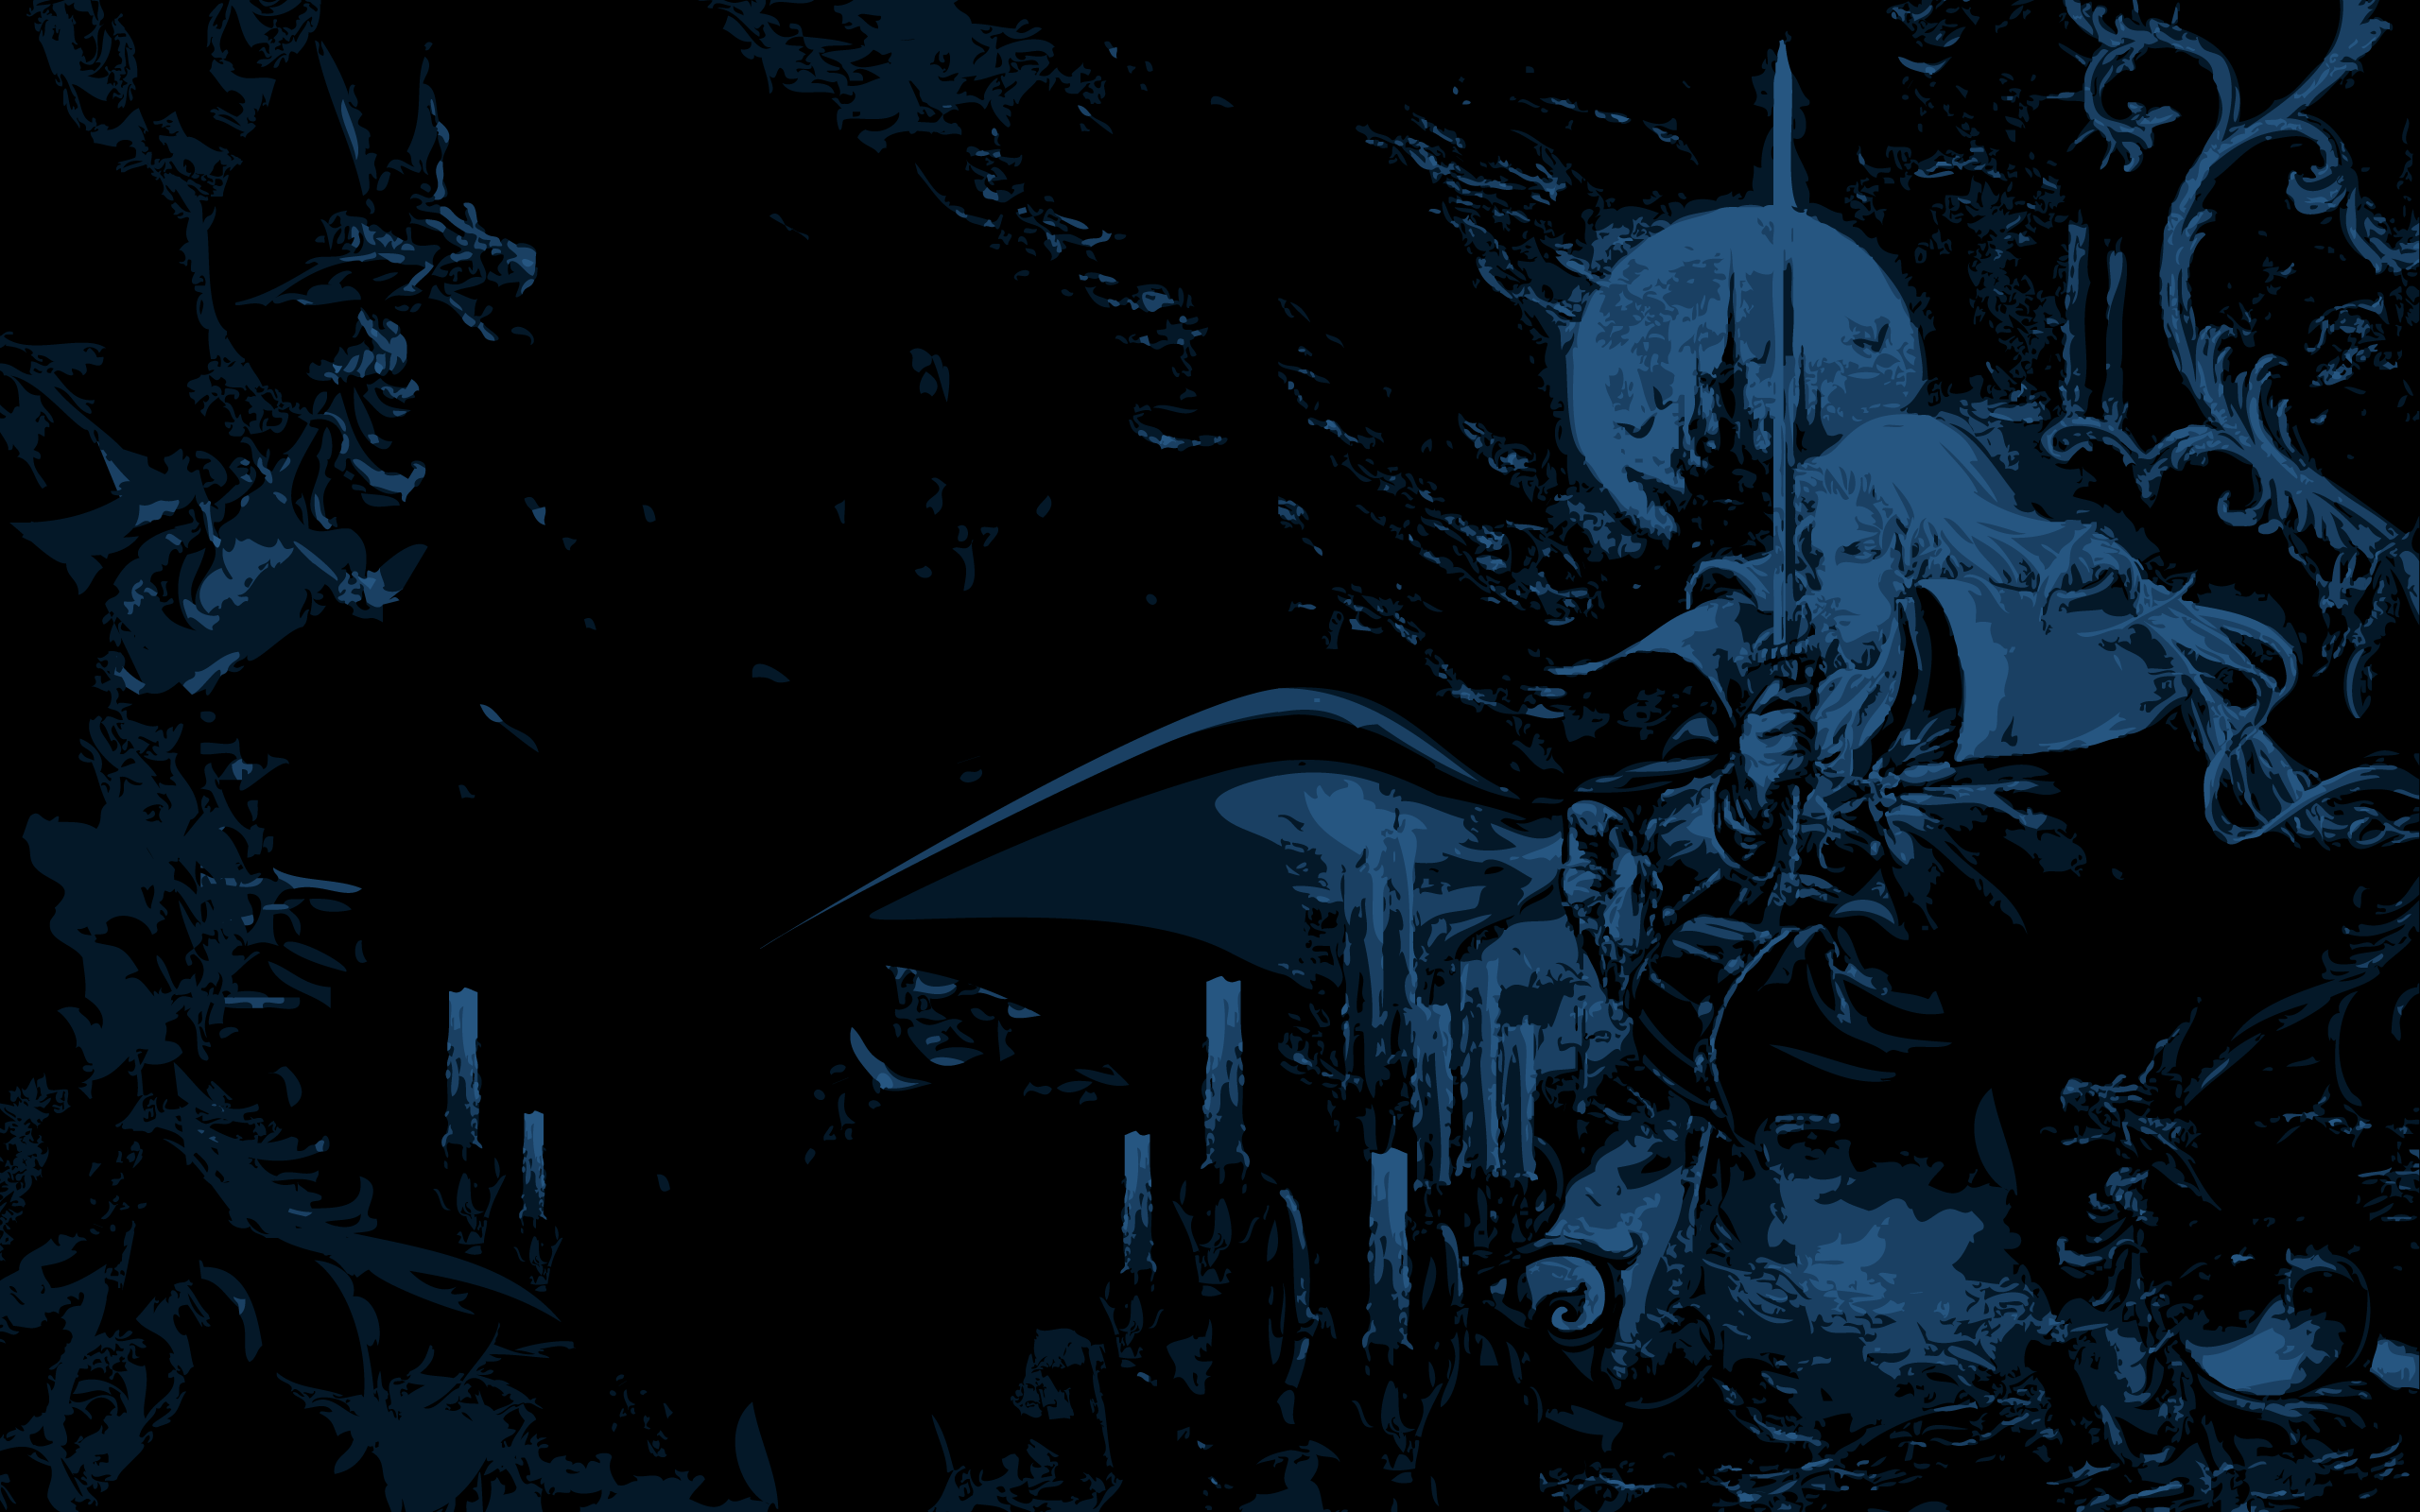 Castlevania Backgrounds Png Free Castlevania Backgrounds Png